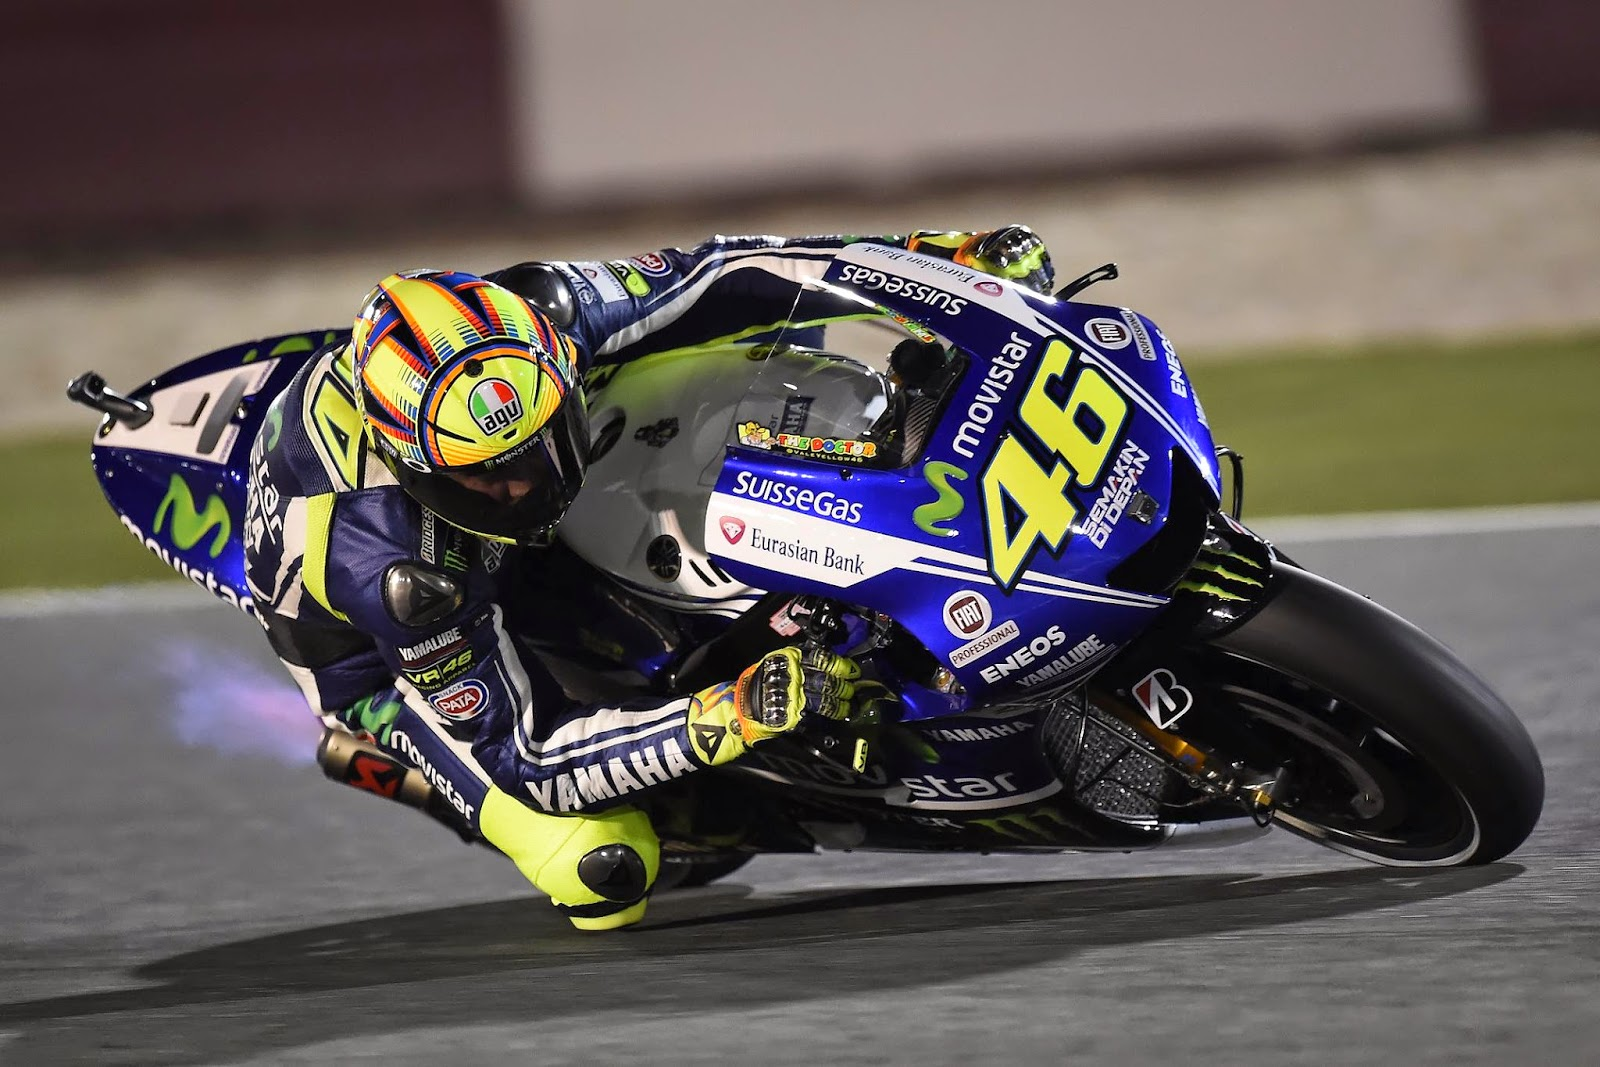 Motogp Watch Qatar 2014 | MotoGP 2017 Info, Video, Points Table